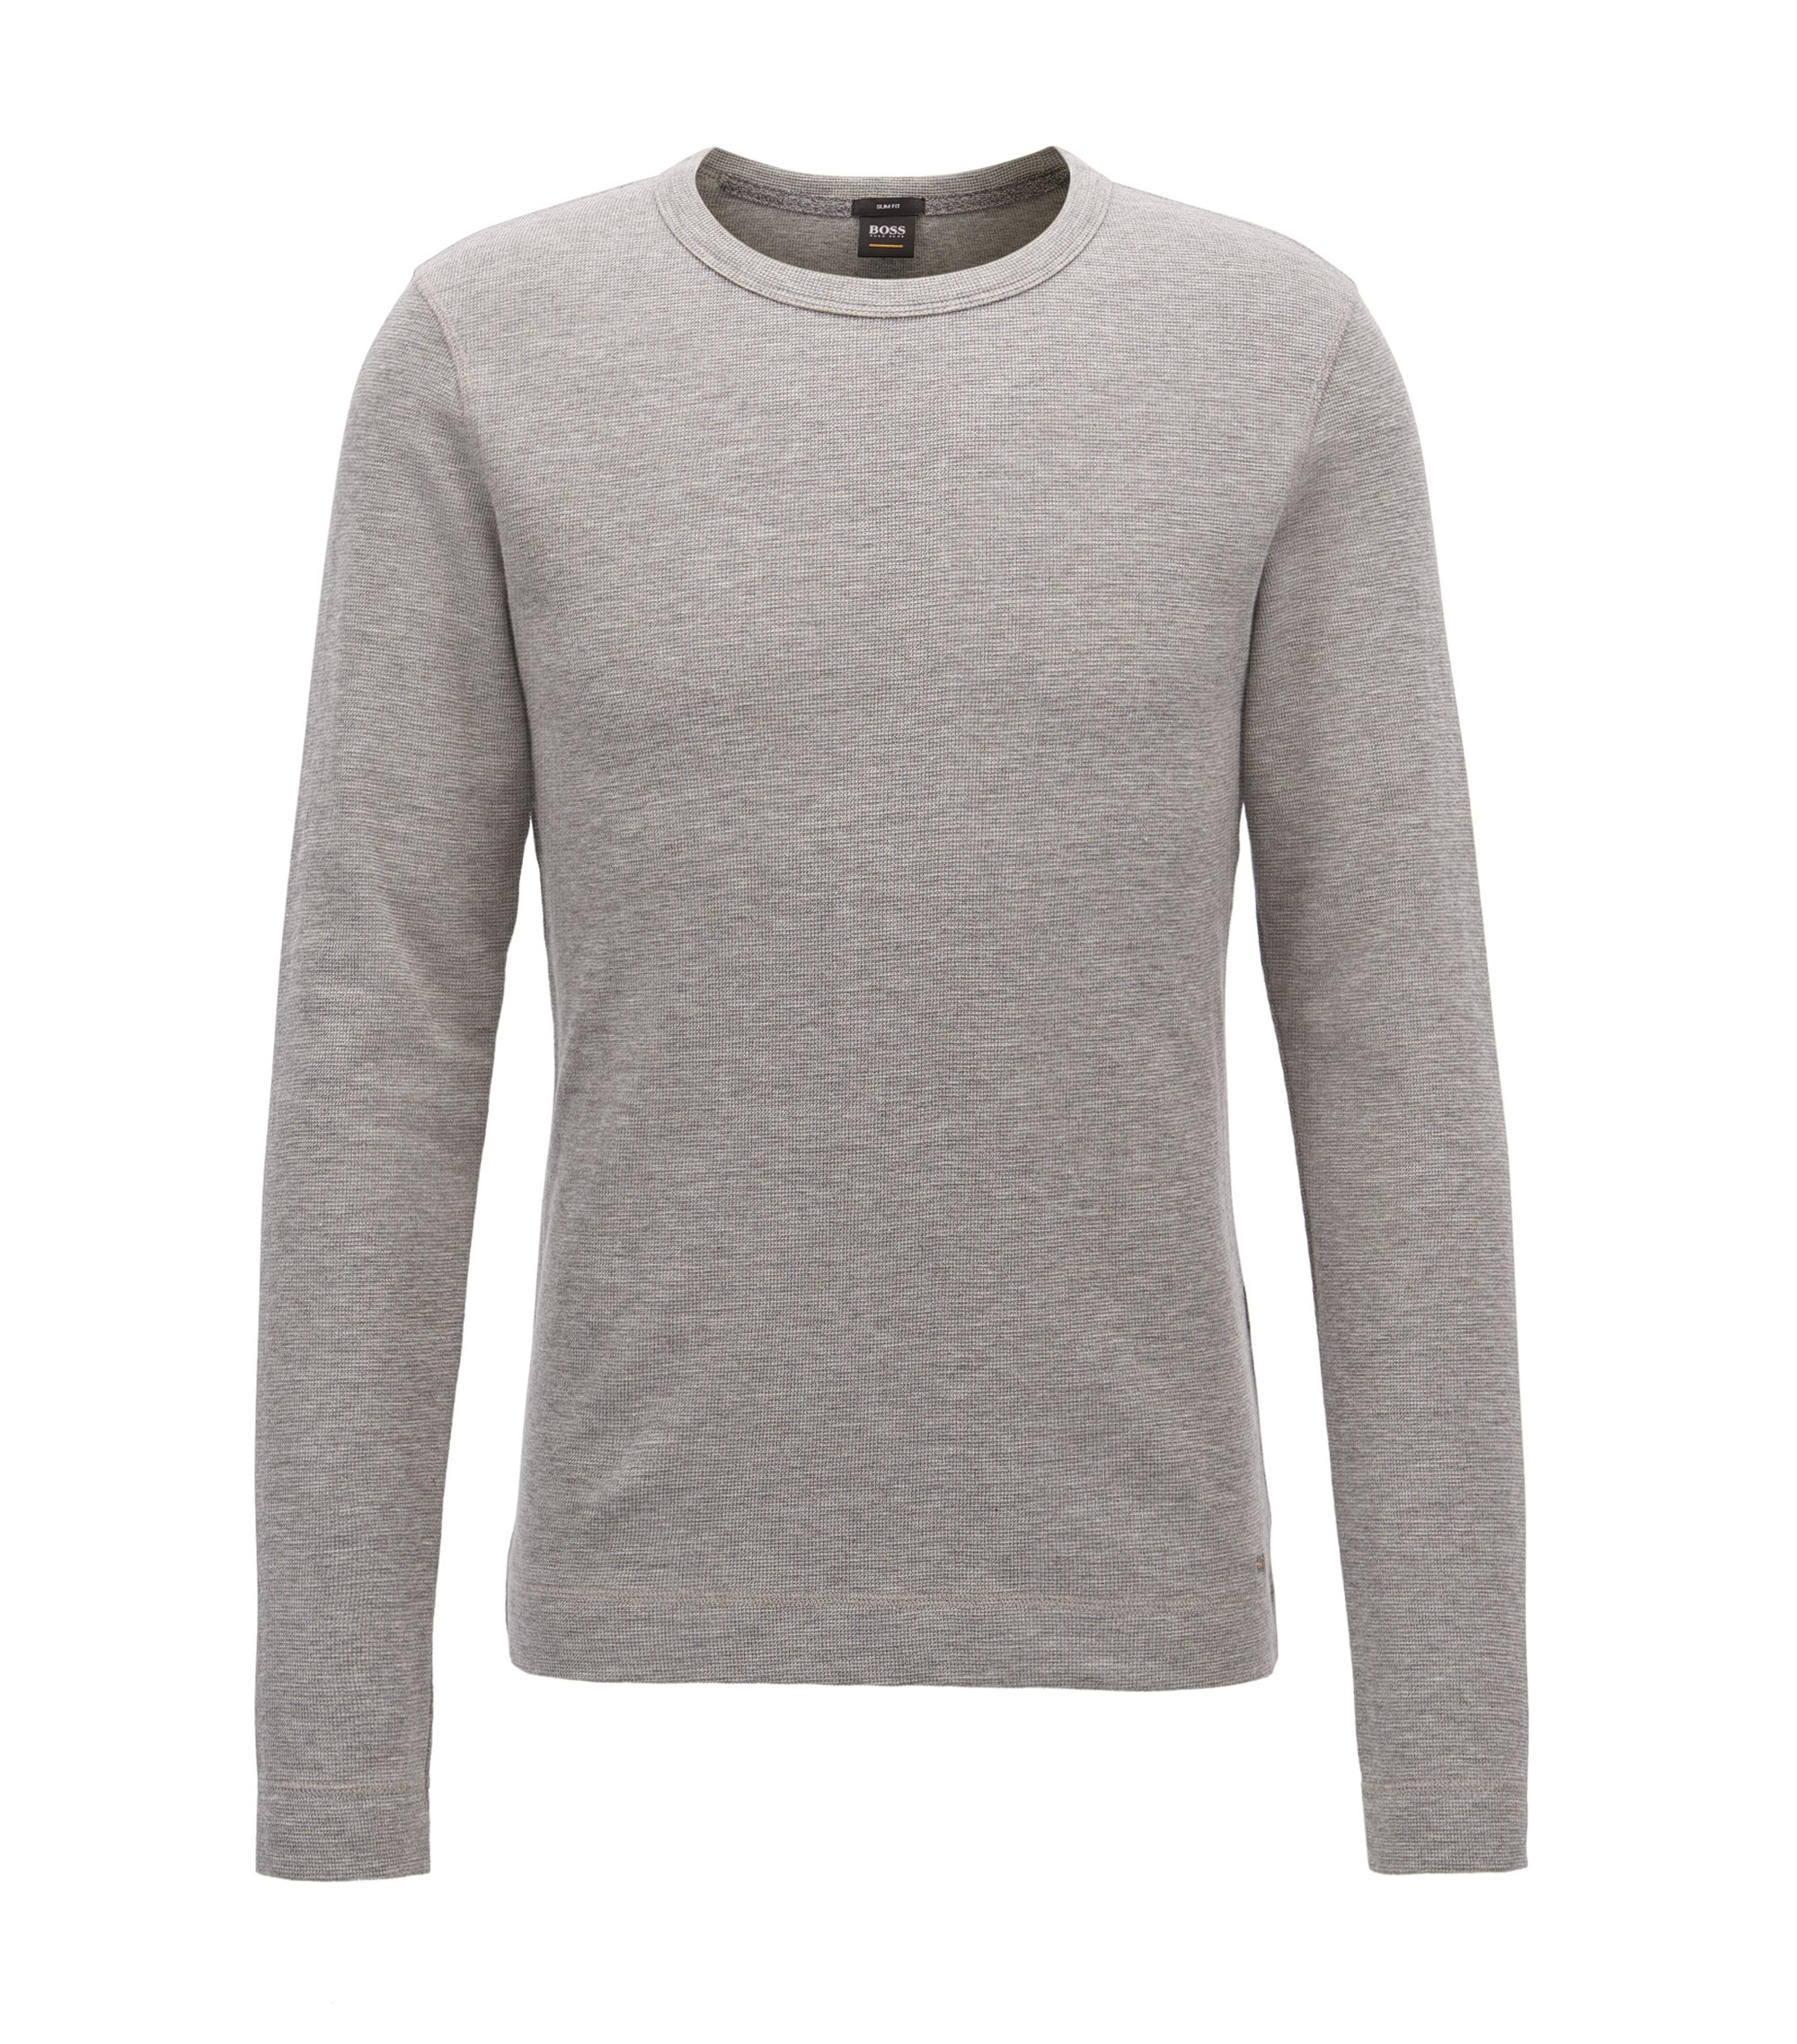 Slim-fit long-sleeved T-shirt in heathered cotton, Light Grey